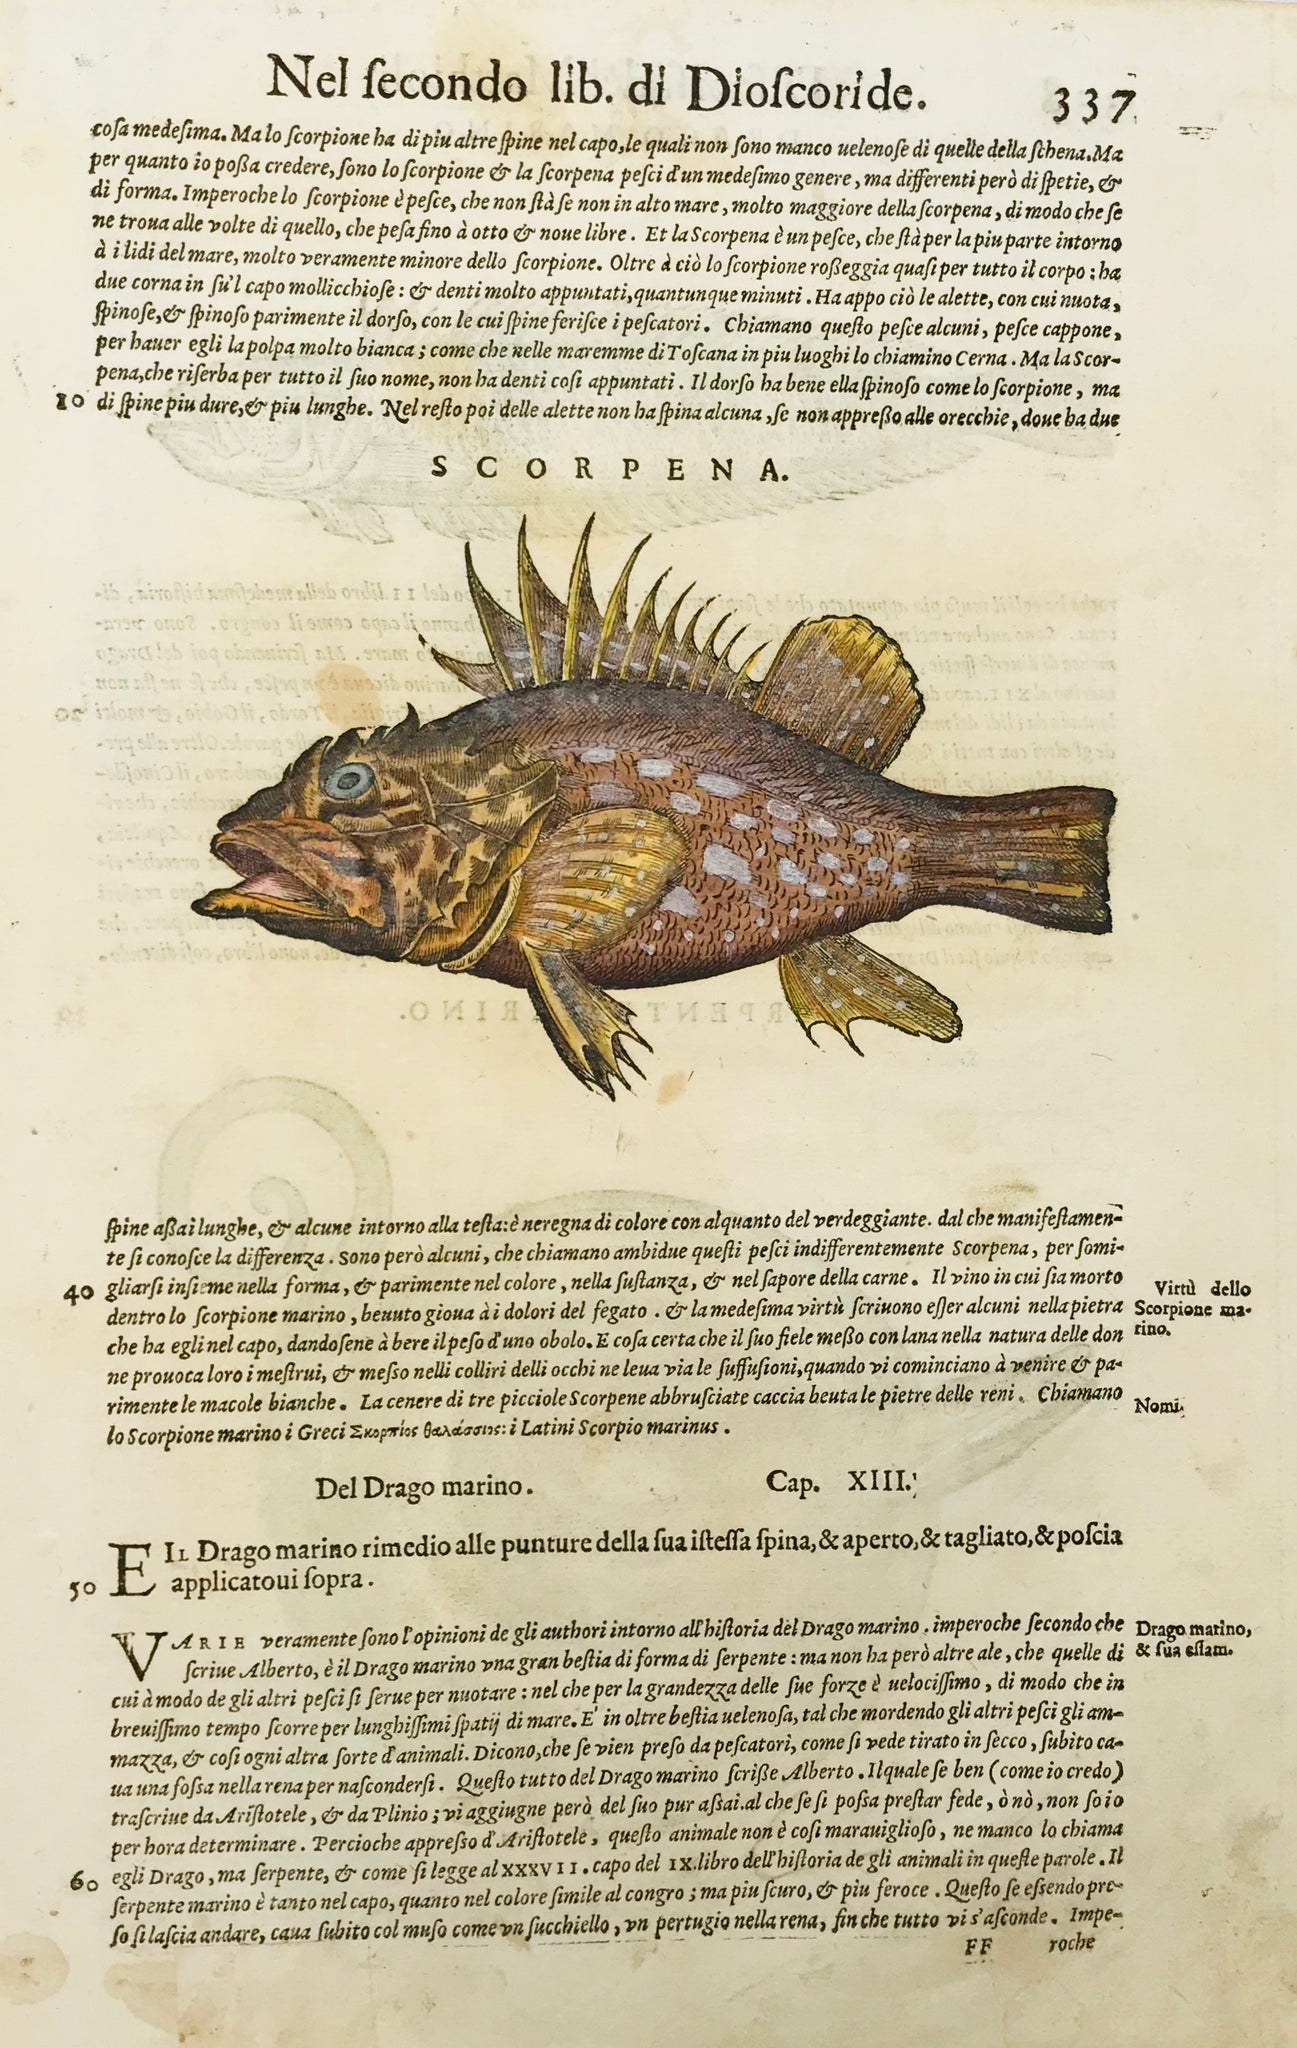 Drago Marino (Stone Fish)  Woodcut by Pietro Andrea Mattioli (1500-1577). Published 1571. Reverse side is printed with another s type of stone fish and a sea snake plus text in Italian. Fine, recent hand coloring. Small repairs on lower margin edge .Some light scattered spotting. 400 years have left their signs of age!